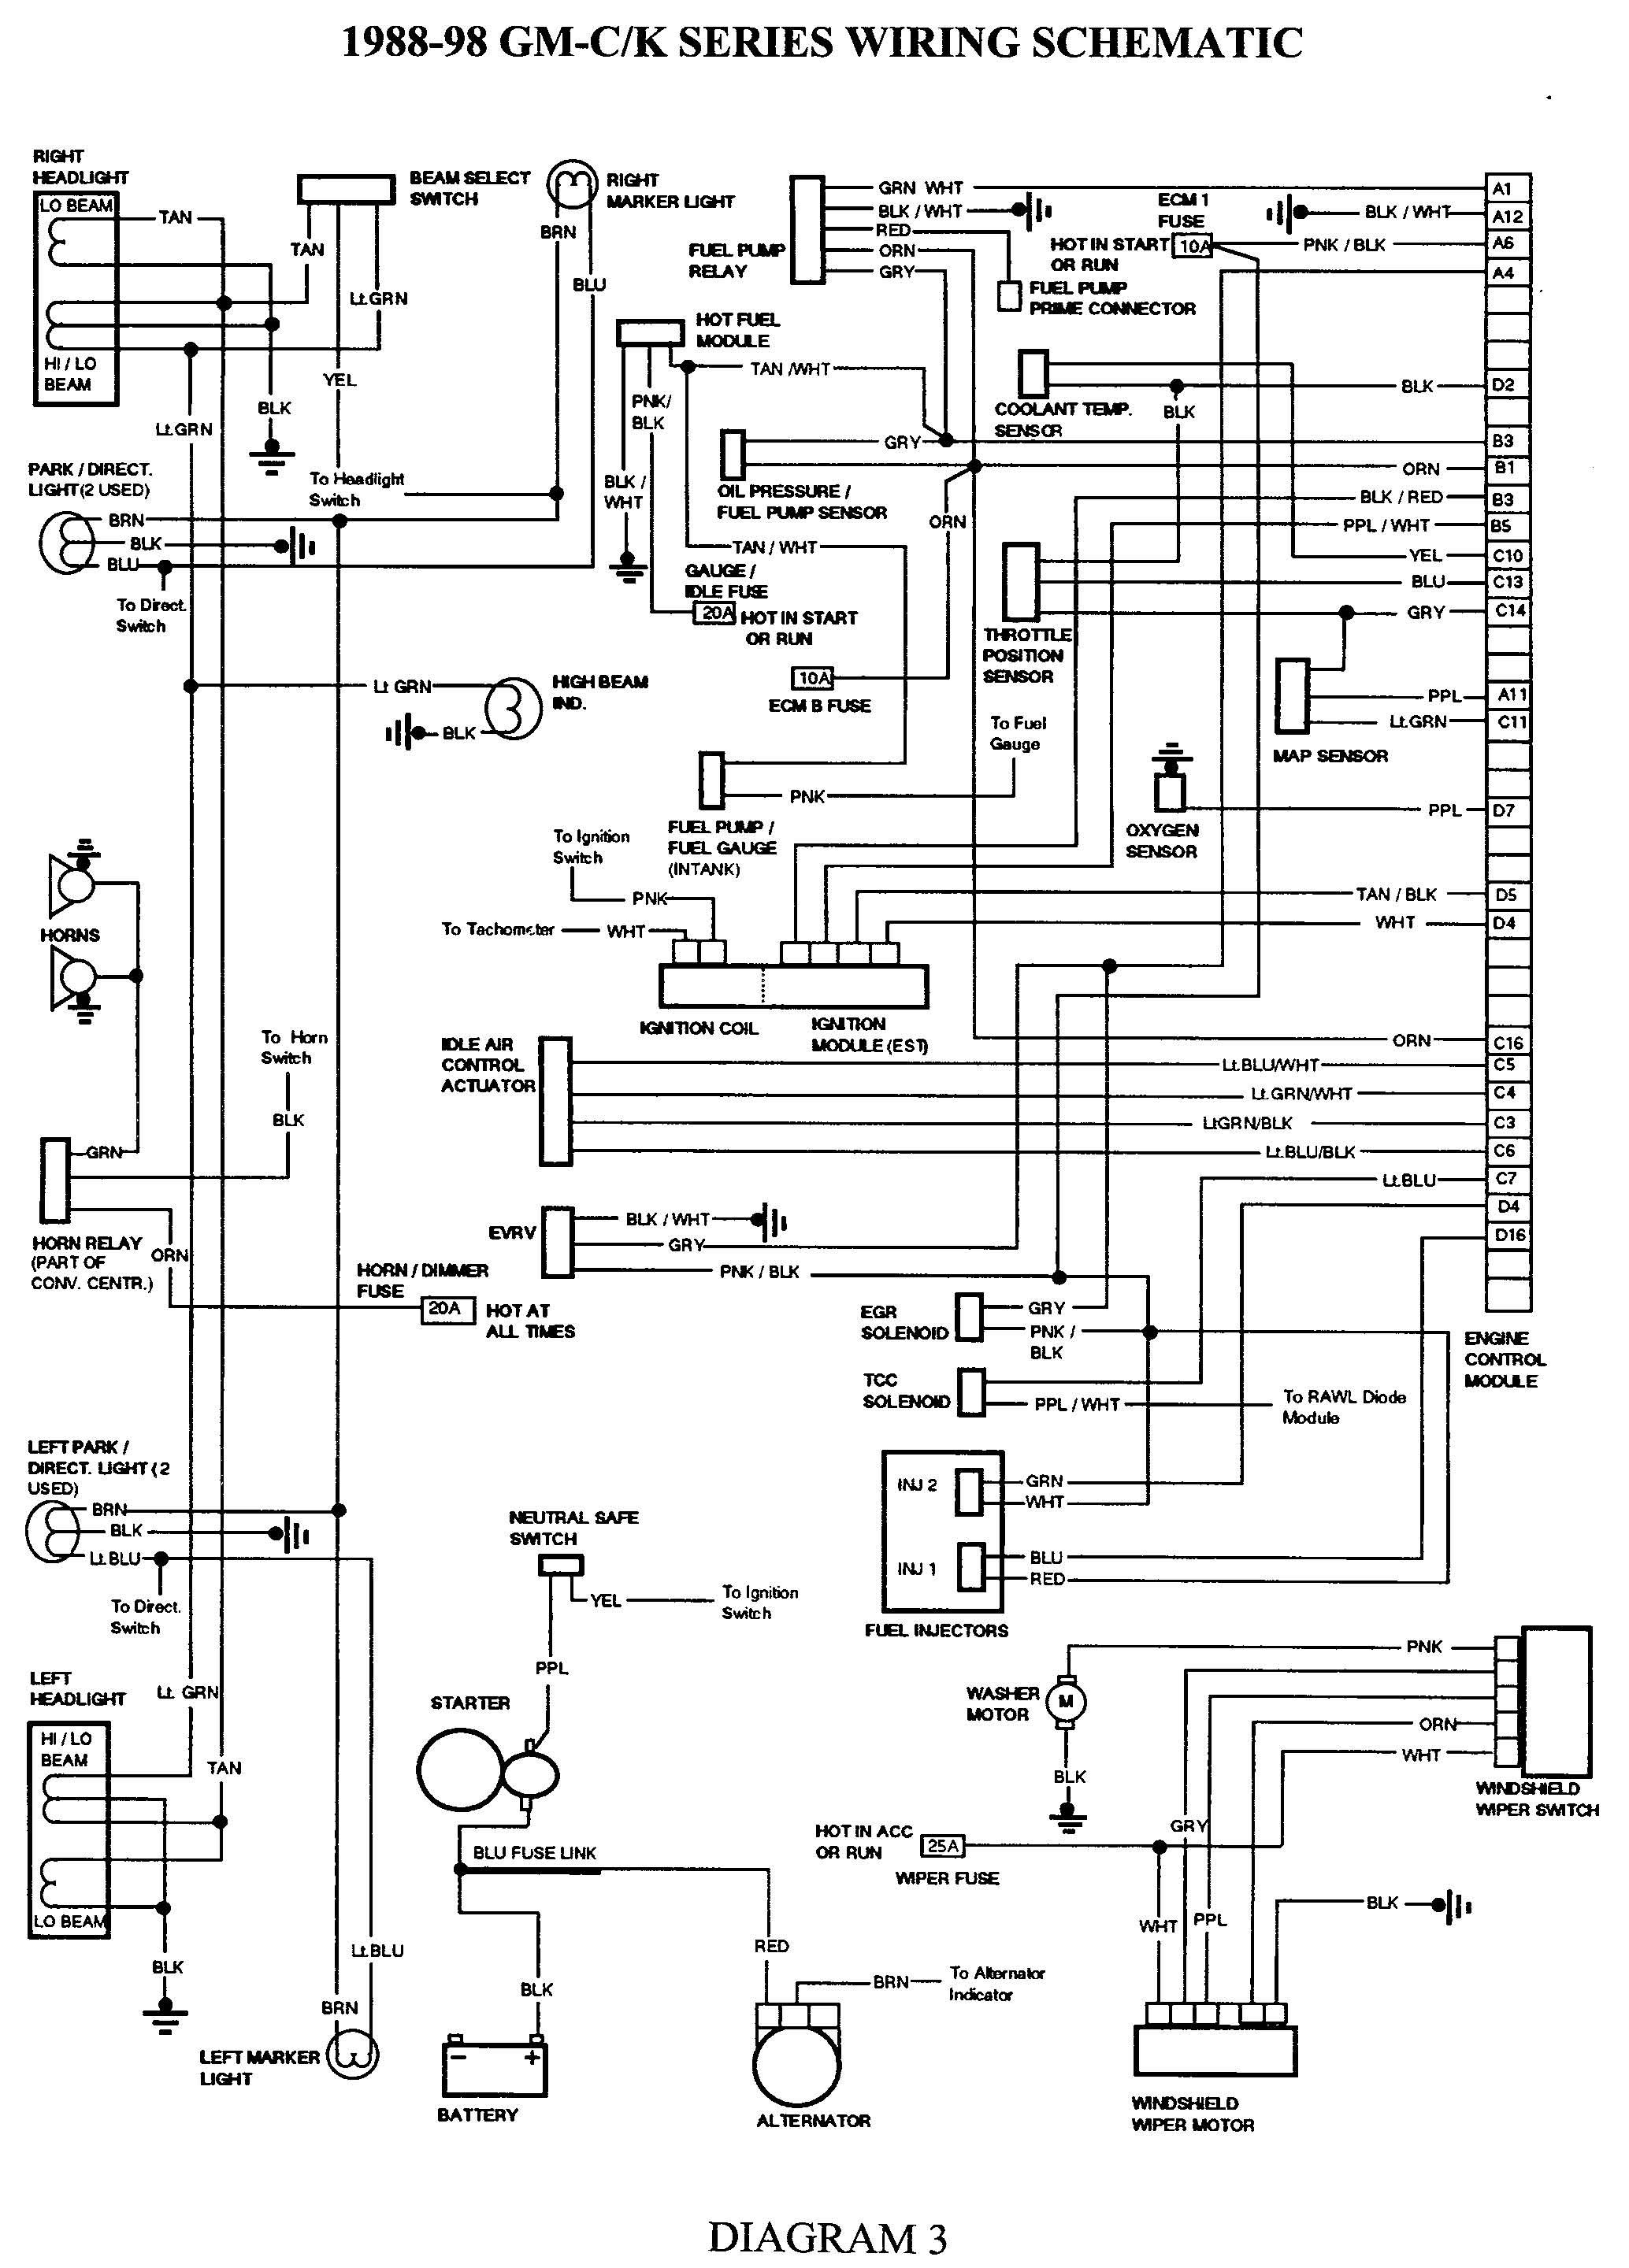 1987 trans am 5 0 engine wiring harness diagram wiring diagrams for 5 0 engine wiring harness [ 2068 x 2880 Pixel ]